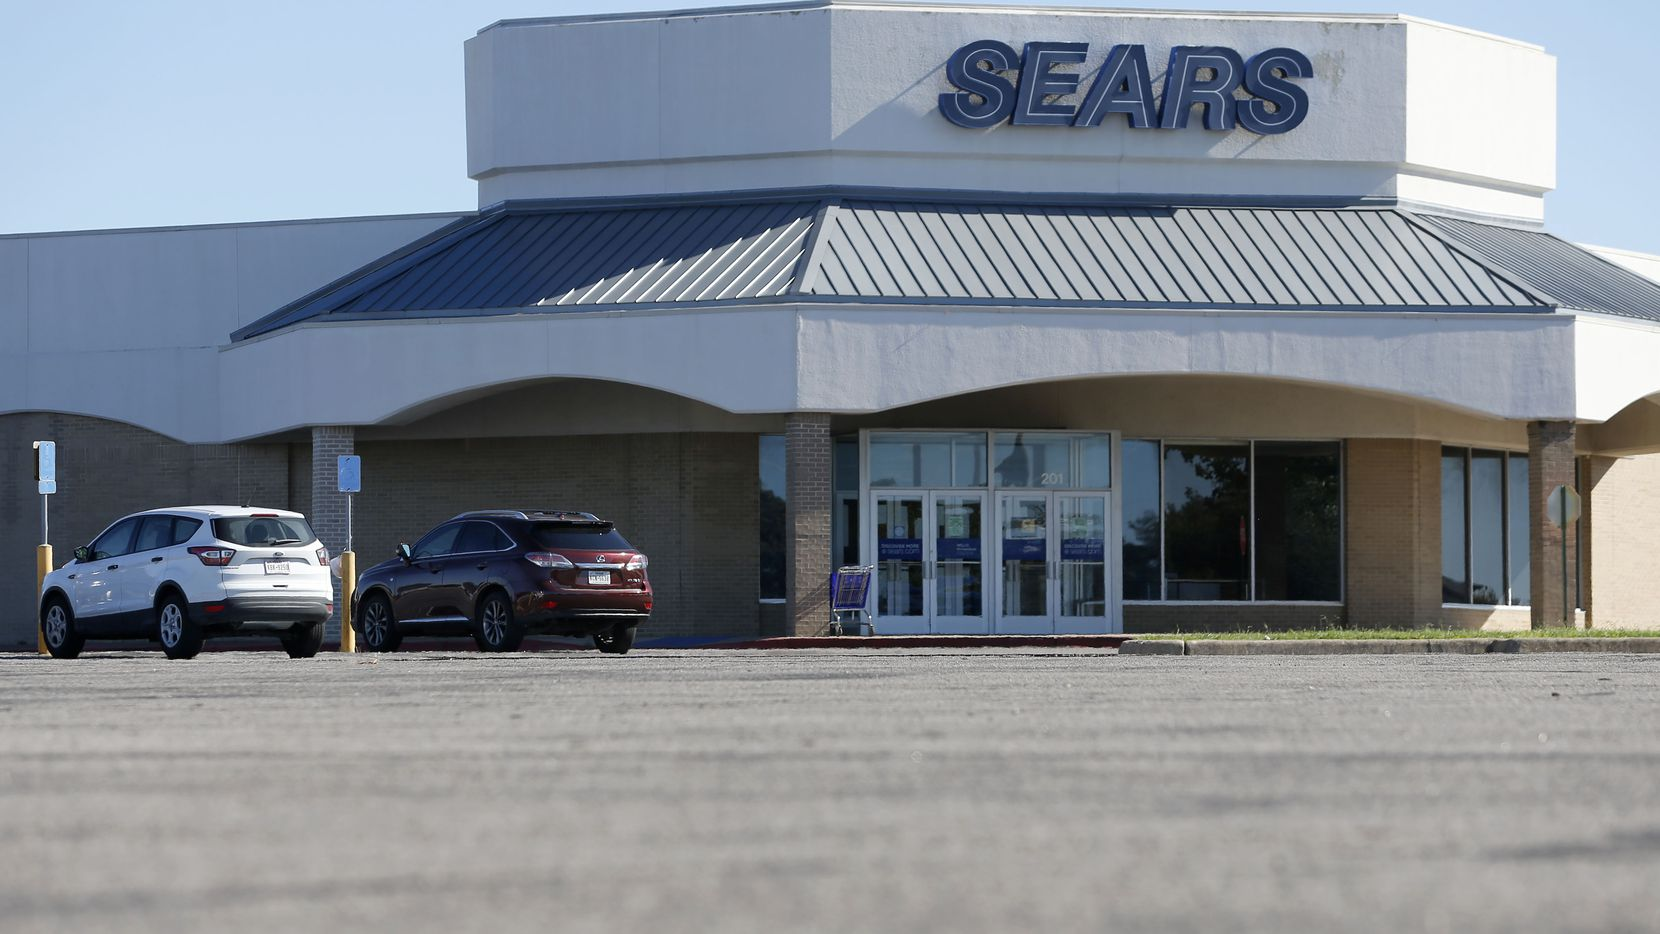 Sears at Richardson Square closed in 2019 and the building is being redeveloped.